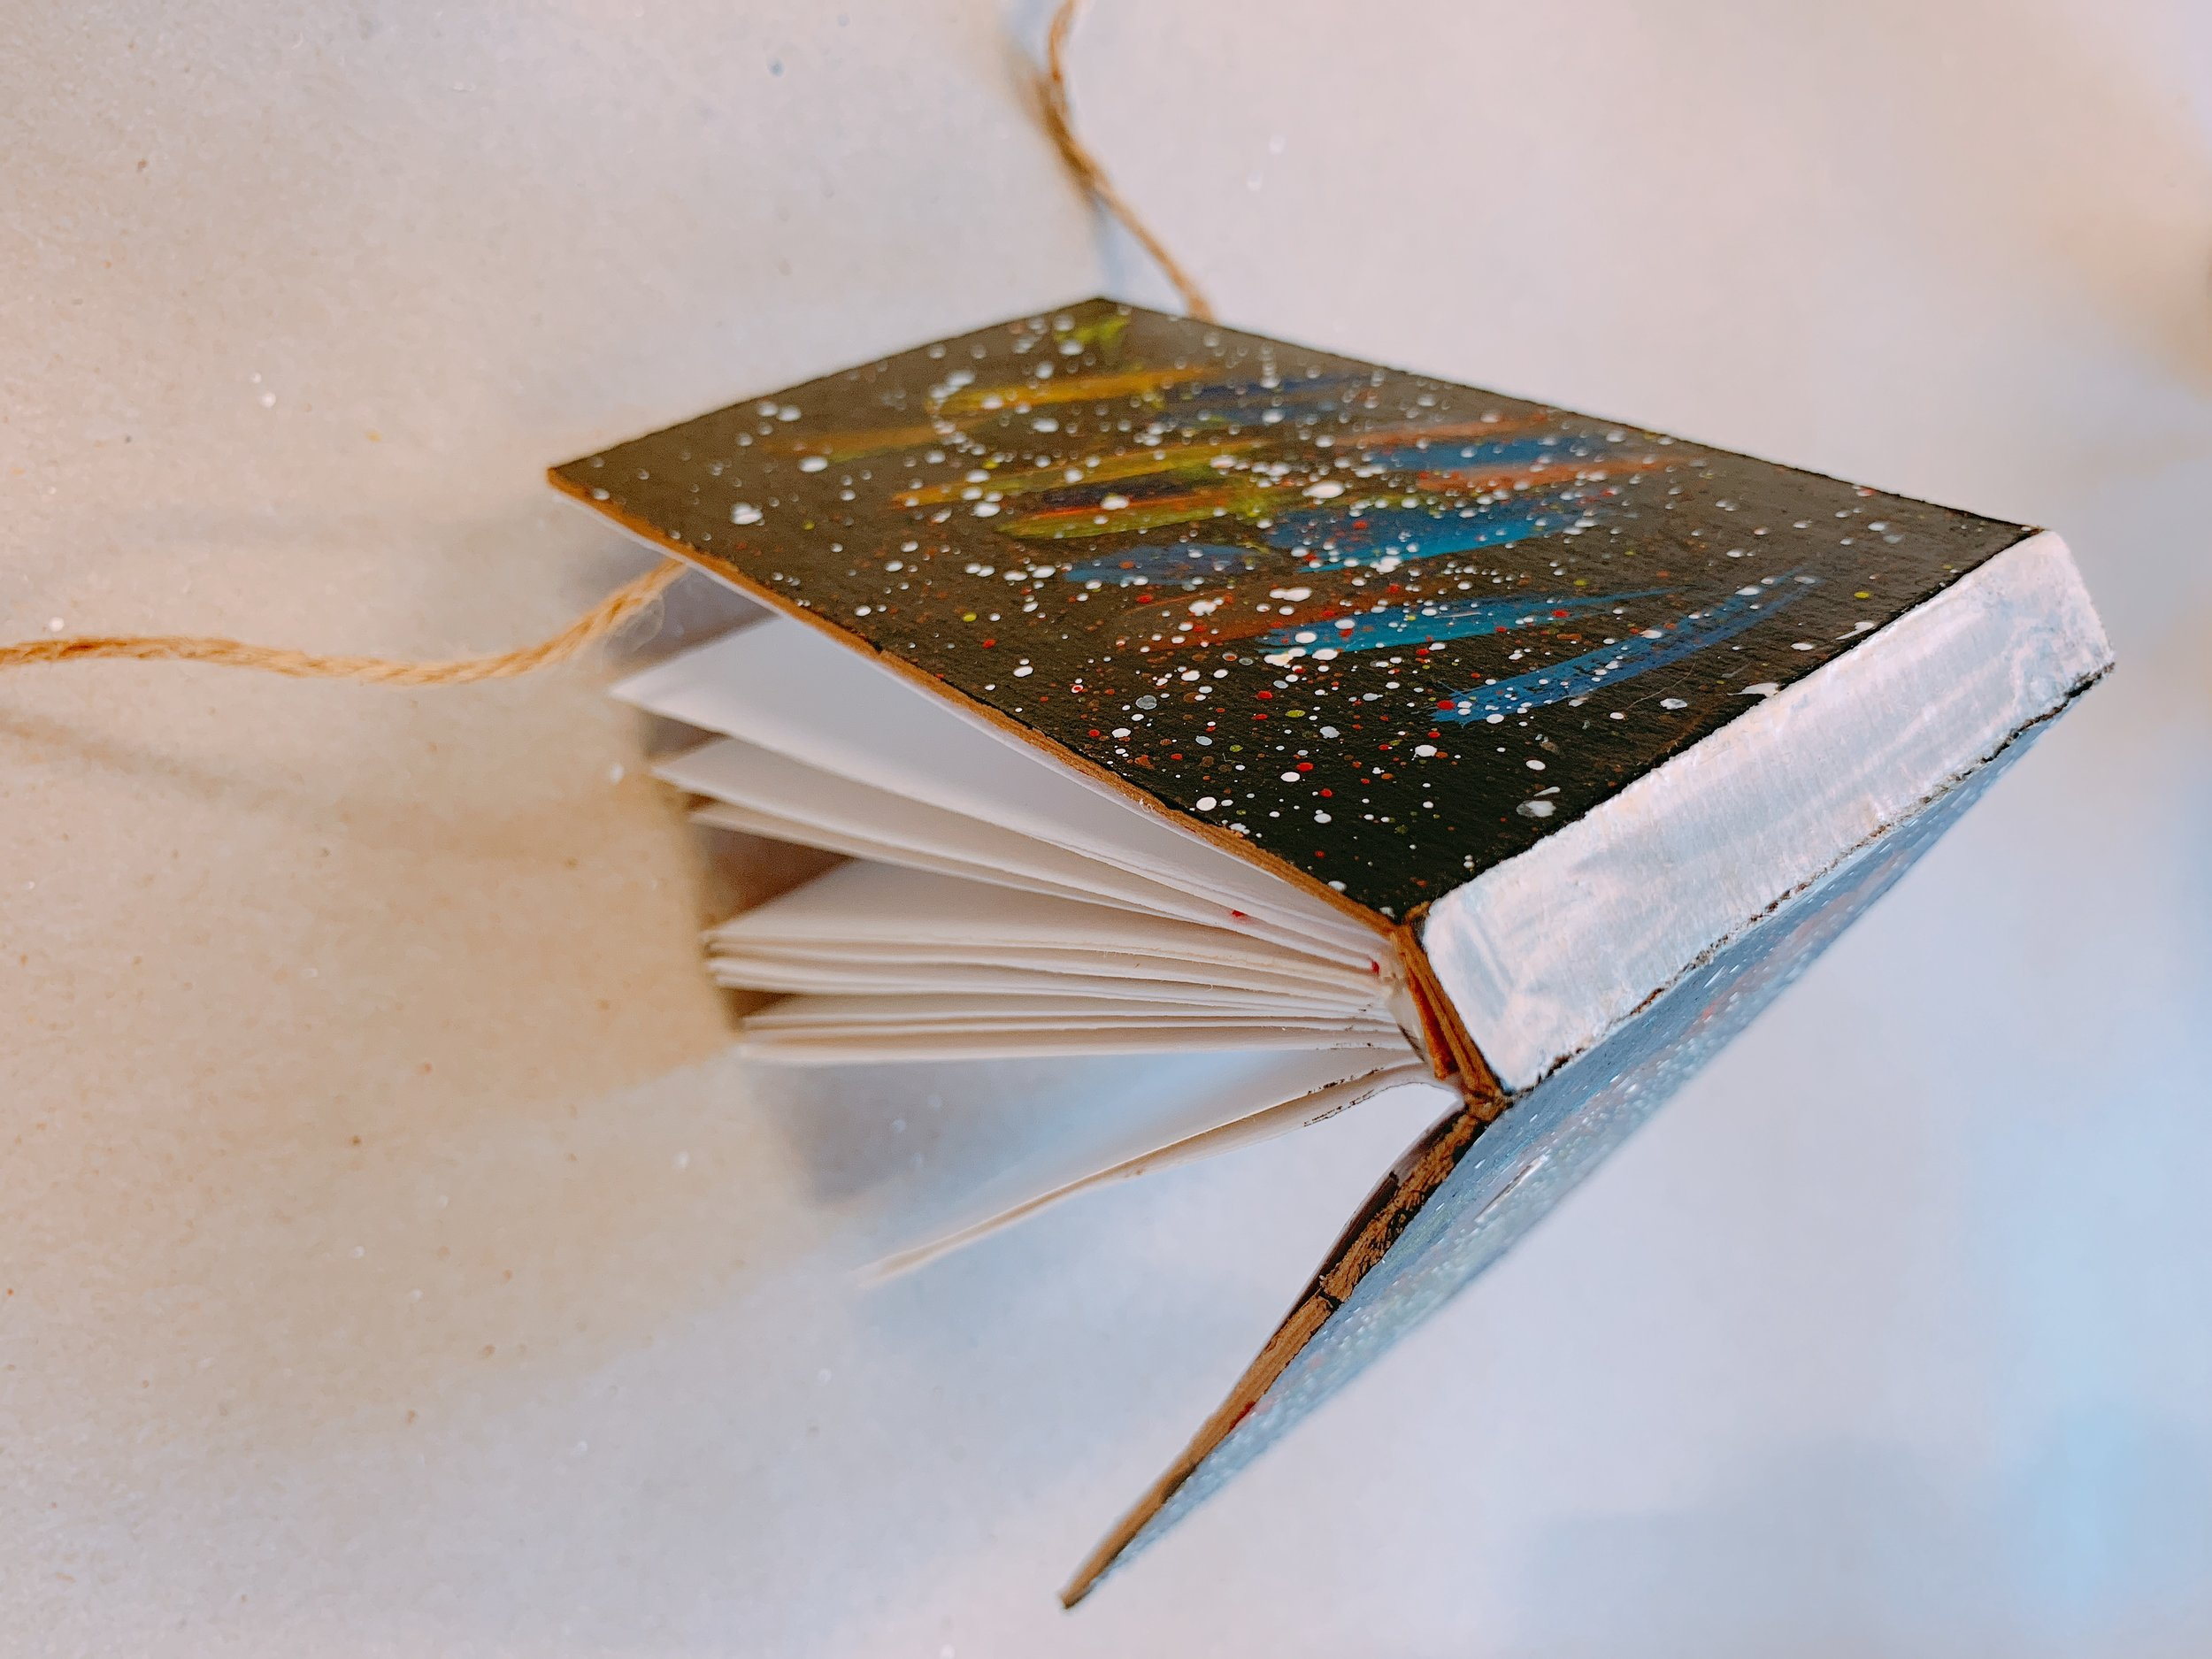 BOOK BINDING/ILLUSTRATION CLASS - Students will illustrate their own books in this class and also learn how to kettle stitch bind their books and design their own art notebooks